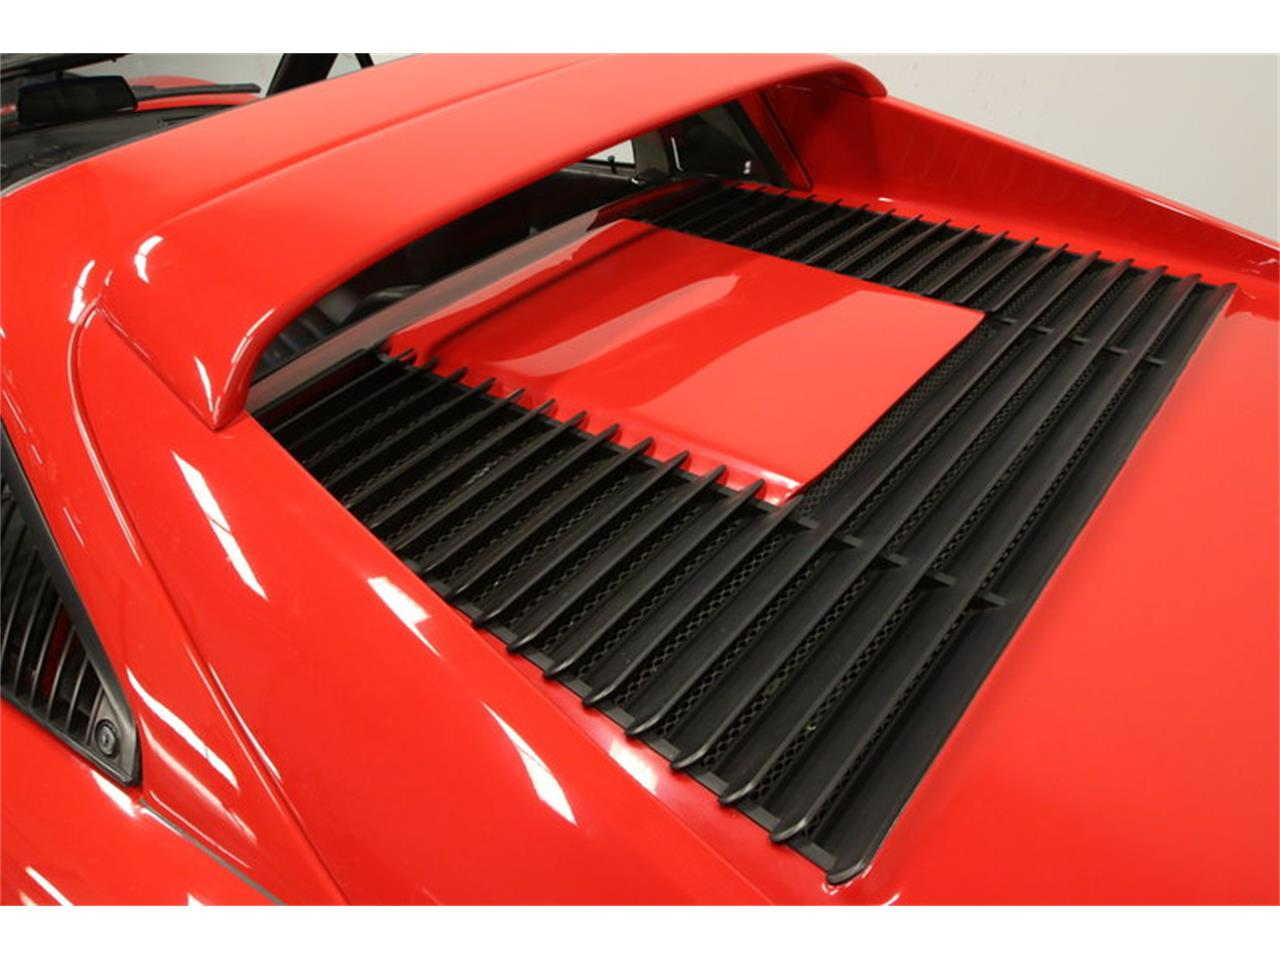 Large Picture of '88 Ferrari 328 GTS located in Lutz Florida - $69,995.00 - MO3Z